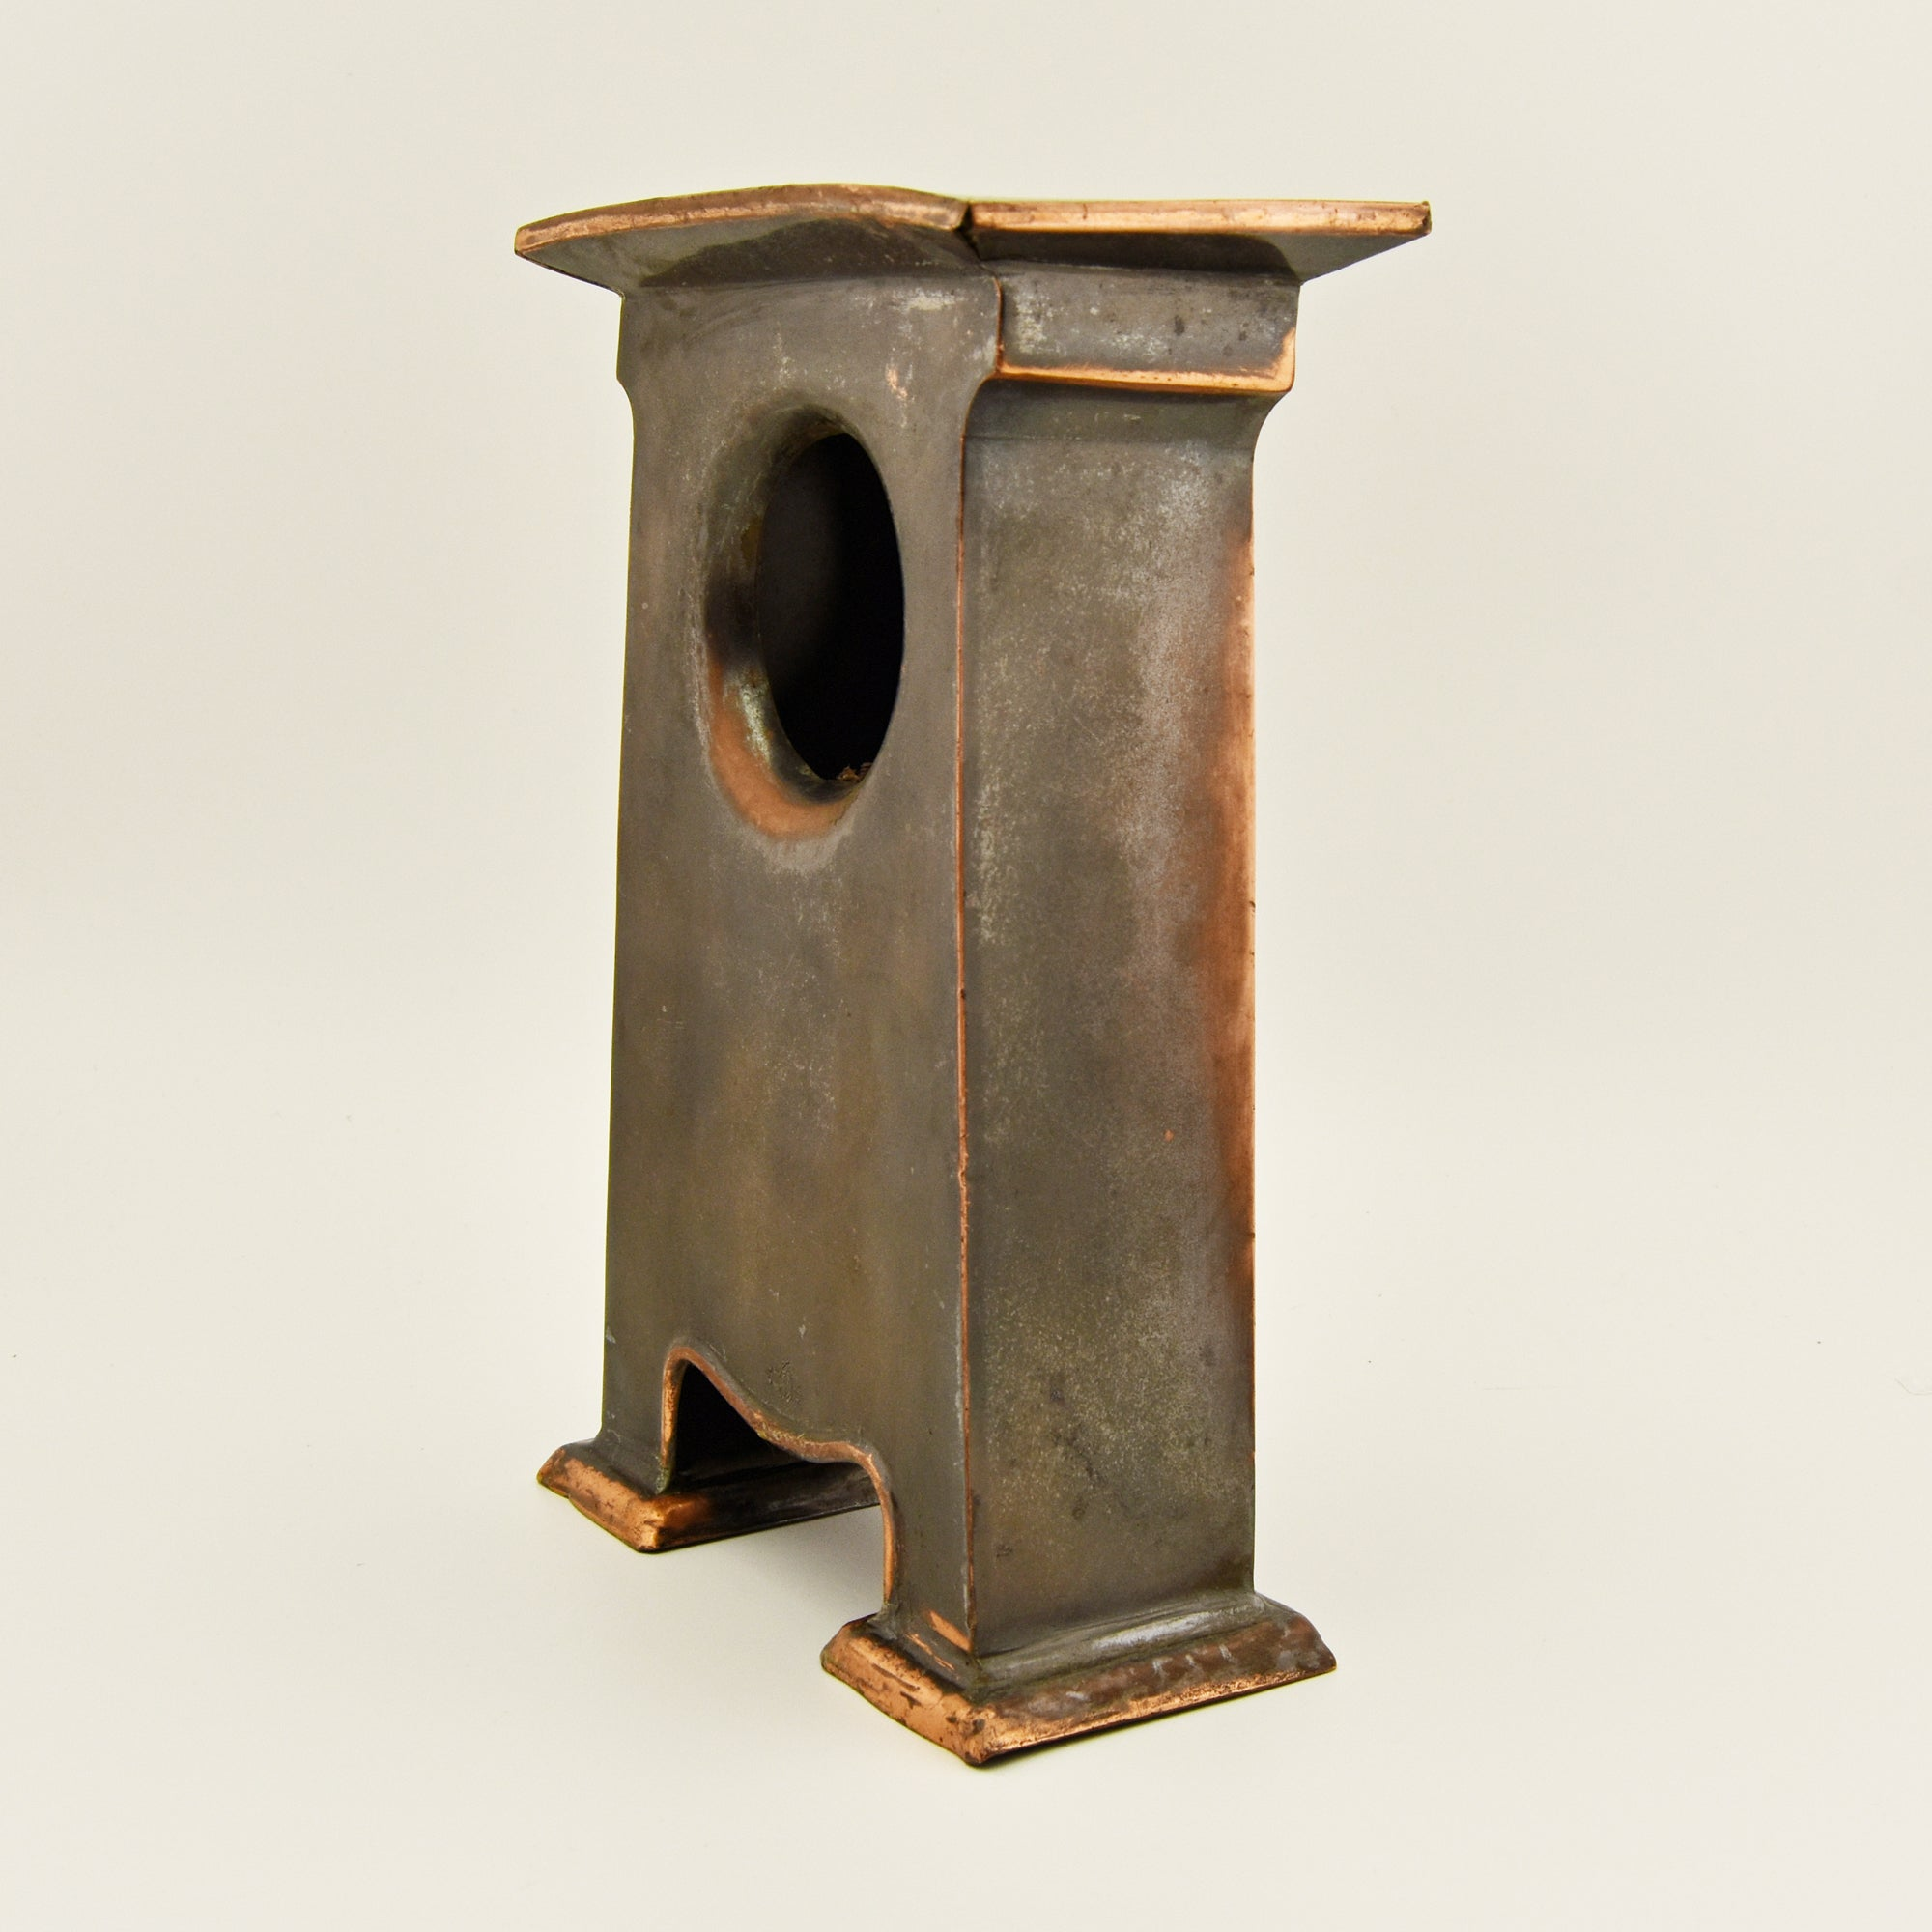 ART NOVEAU COPPER CLOCK CASE